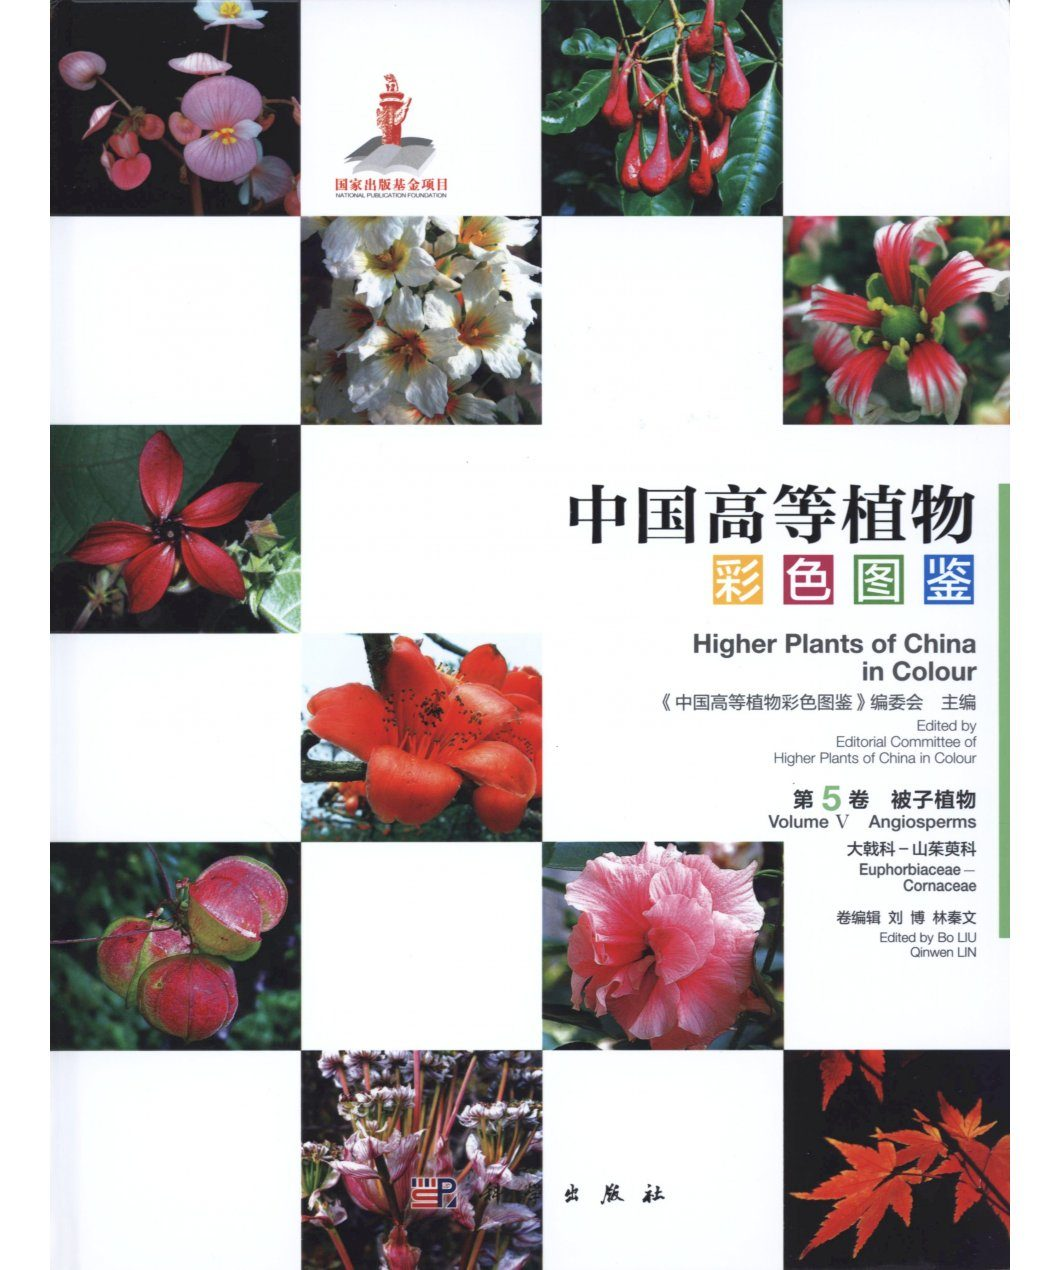 Higher Plants of China in Colour, Volume 5: Angiosperms: Euphorbiaceae – Cornaceae [English / Chinese]